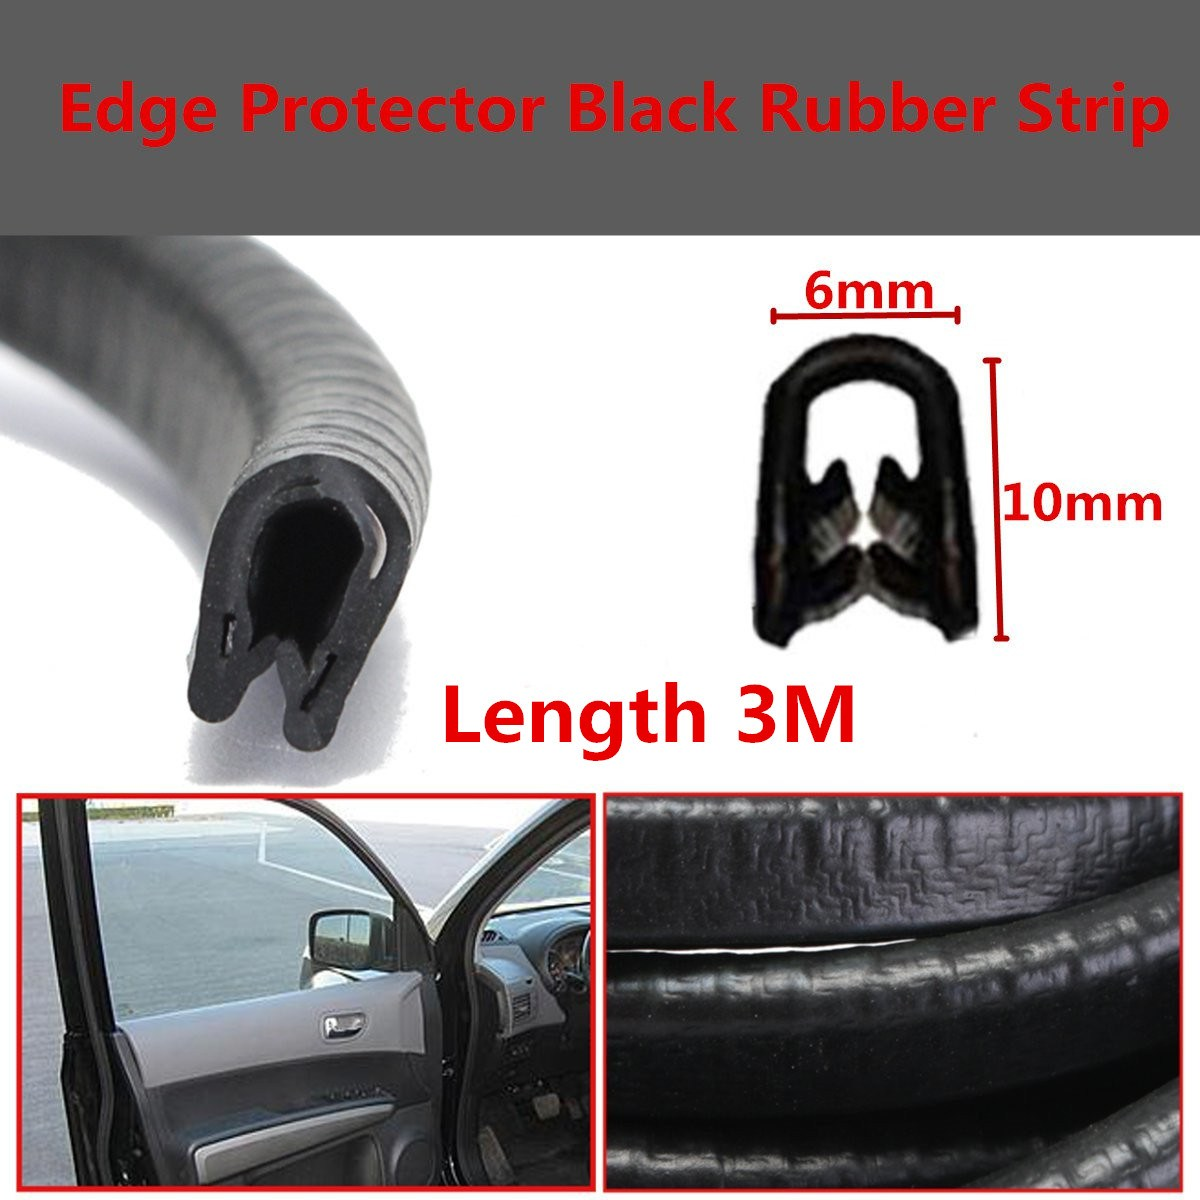 Small U section black rubber car edge protective trim 8mm x 6mm